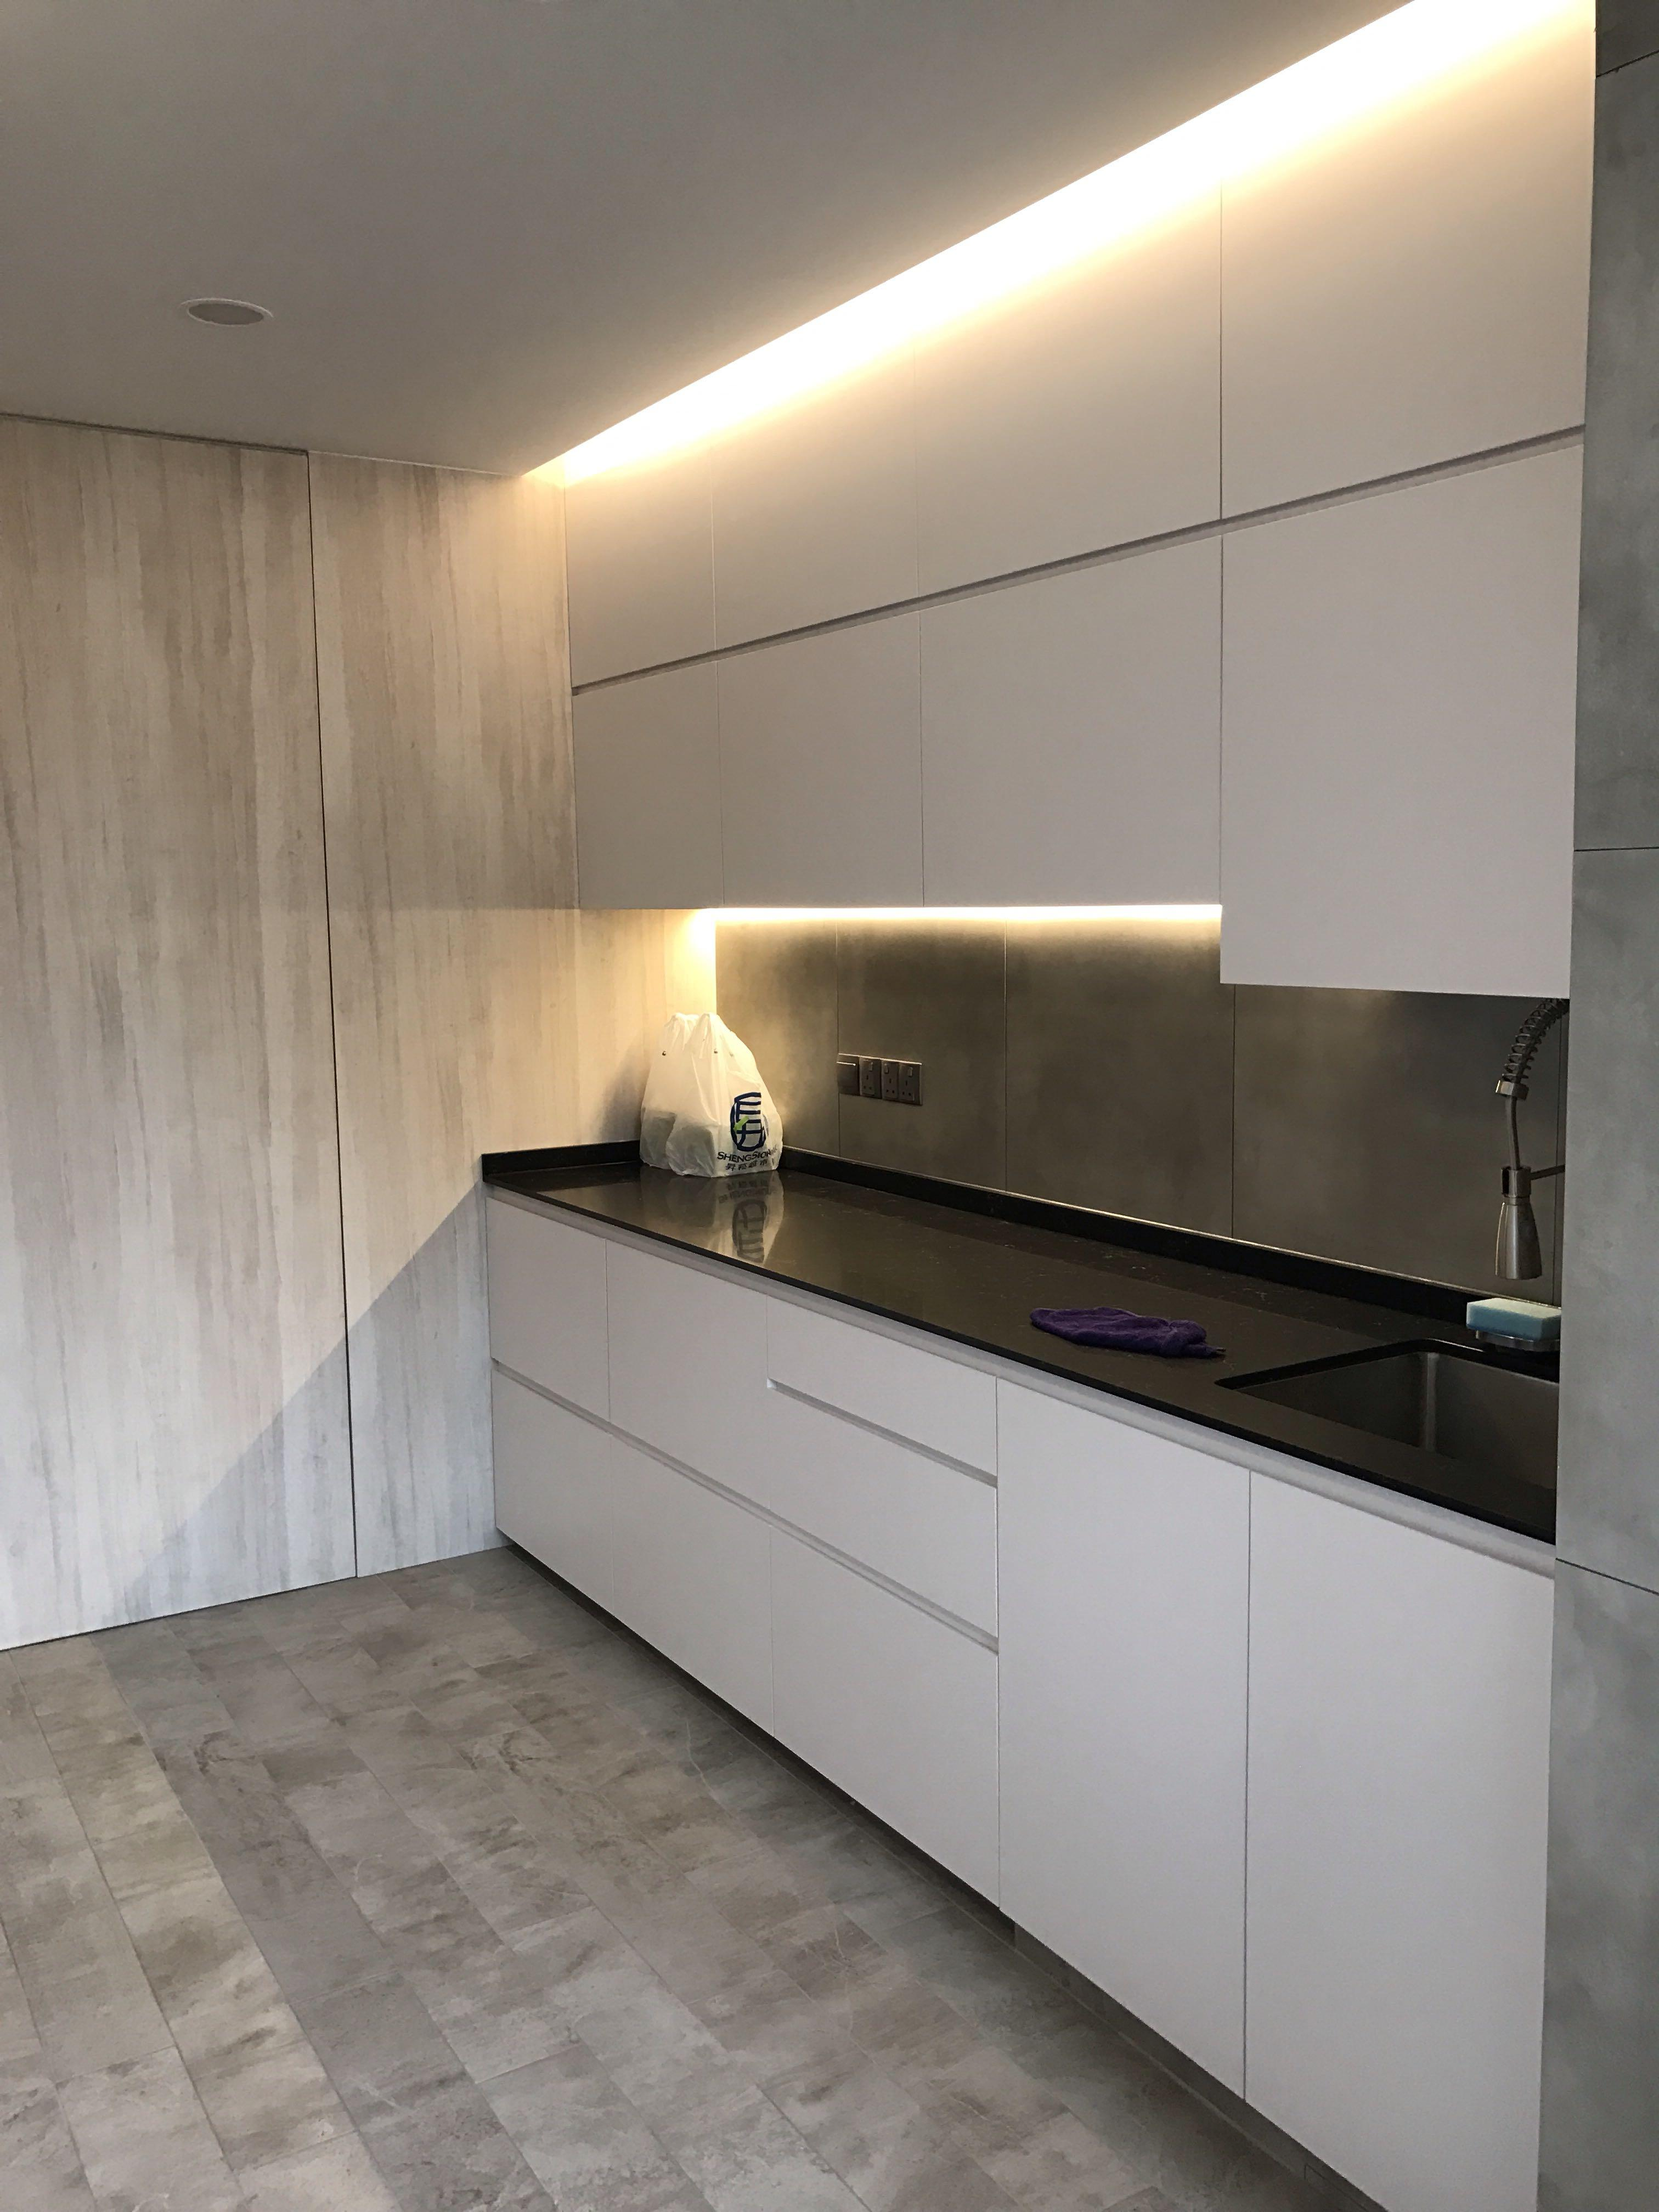 4 Room Bto Full Reno Completed Home Services Renovations On Carousell